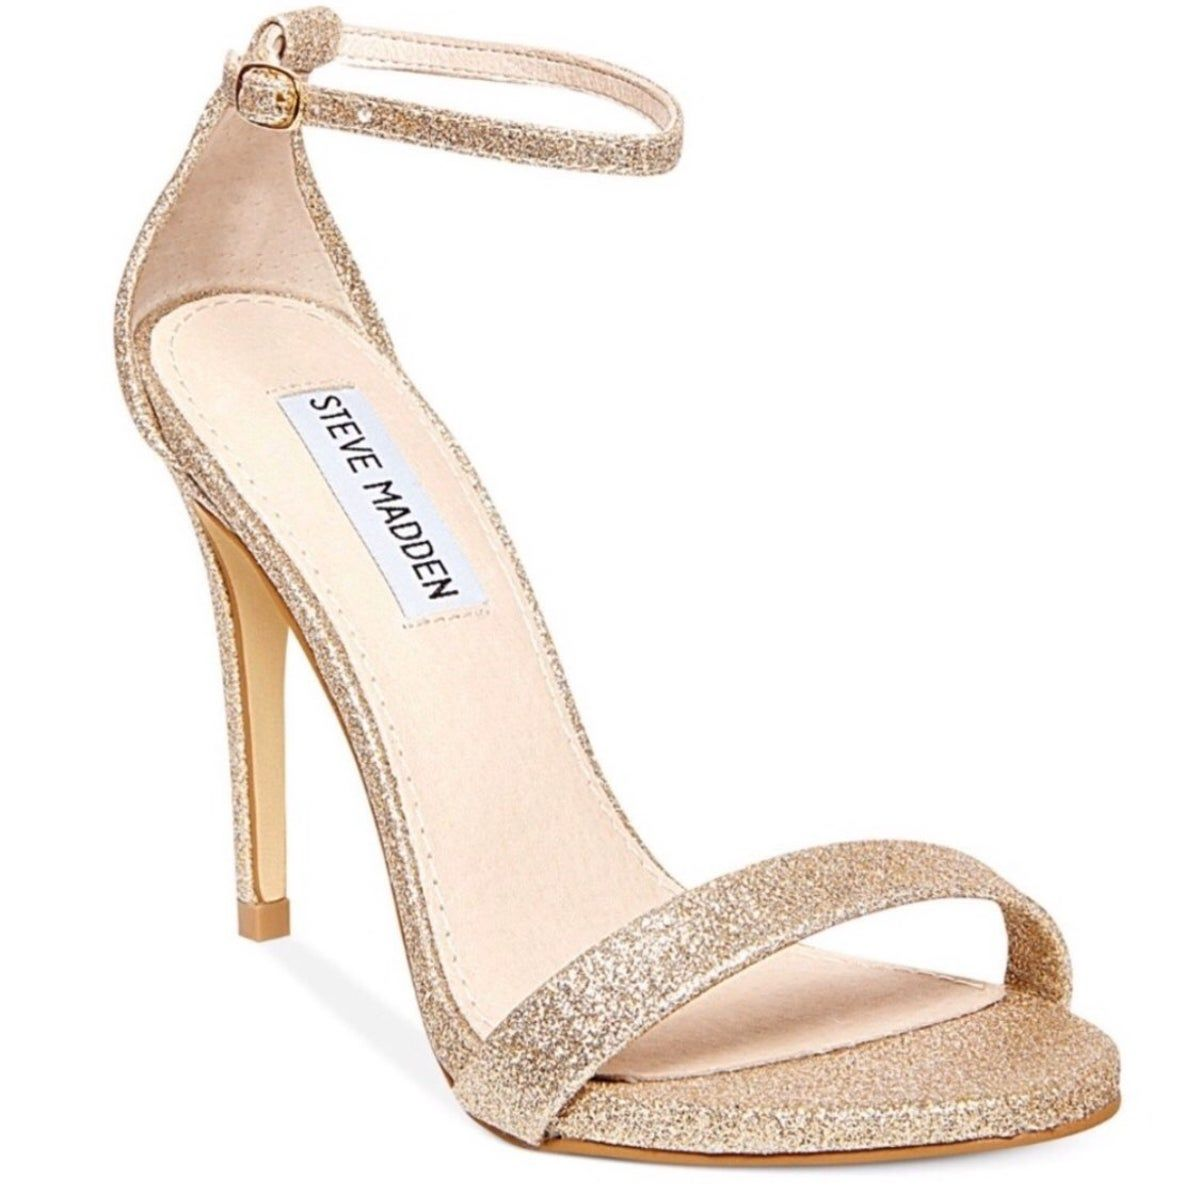 Steve Madden Stecy Sandal In Gold Glitte Bridesmaids Heels Bridesmaid Shoes Bridal Shoes